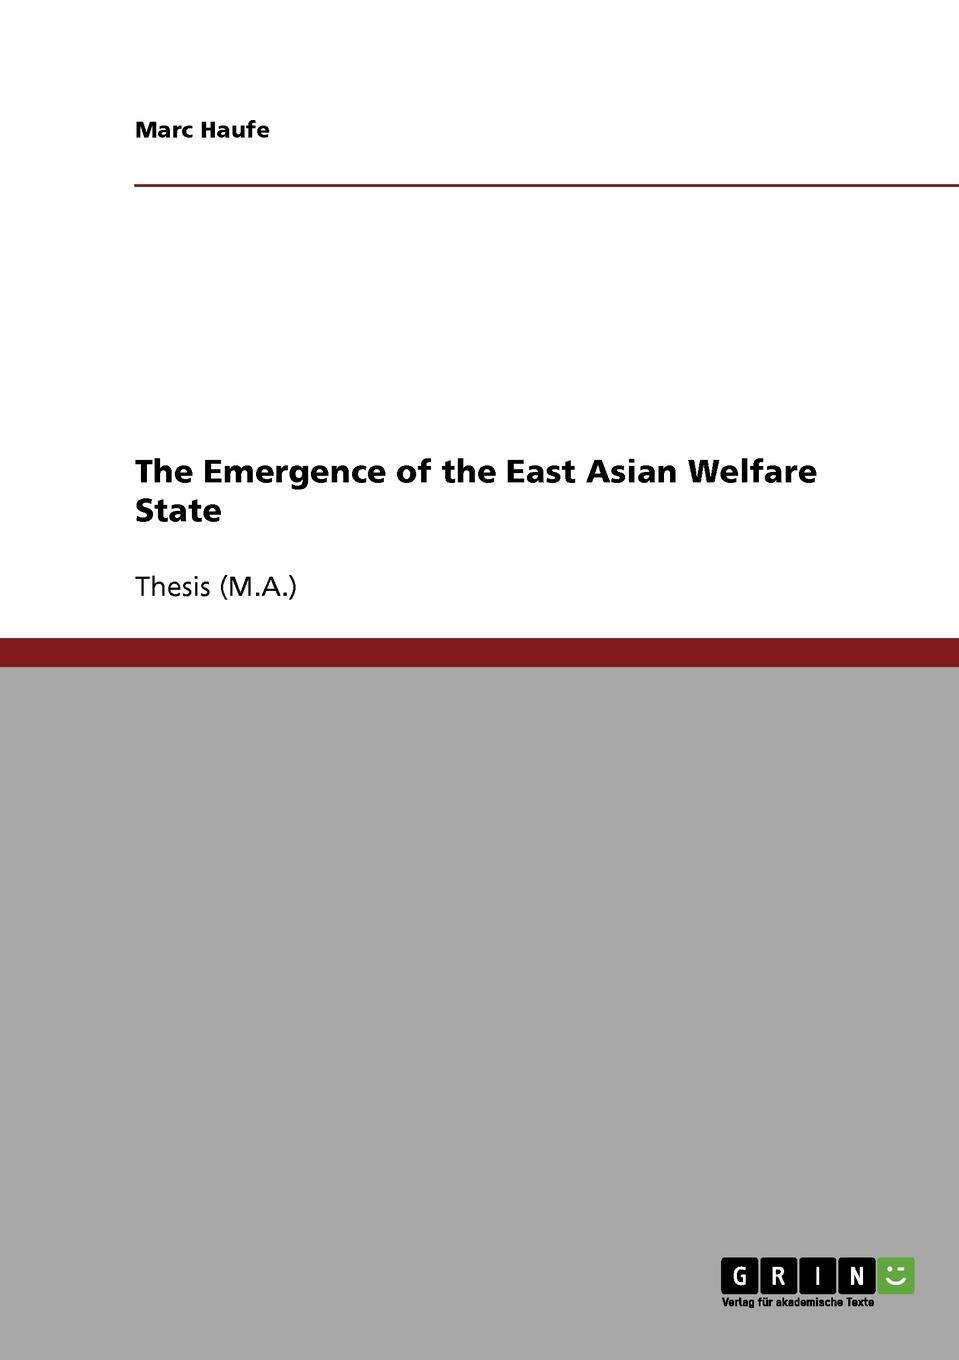 Marc Haufe The Emergence of the East Asian Welfare State the main battlefield of the east cd